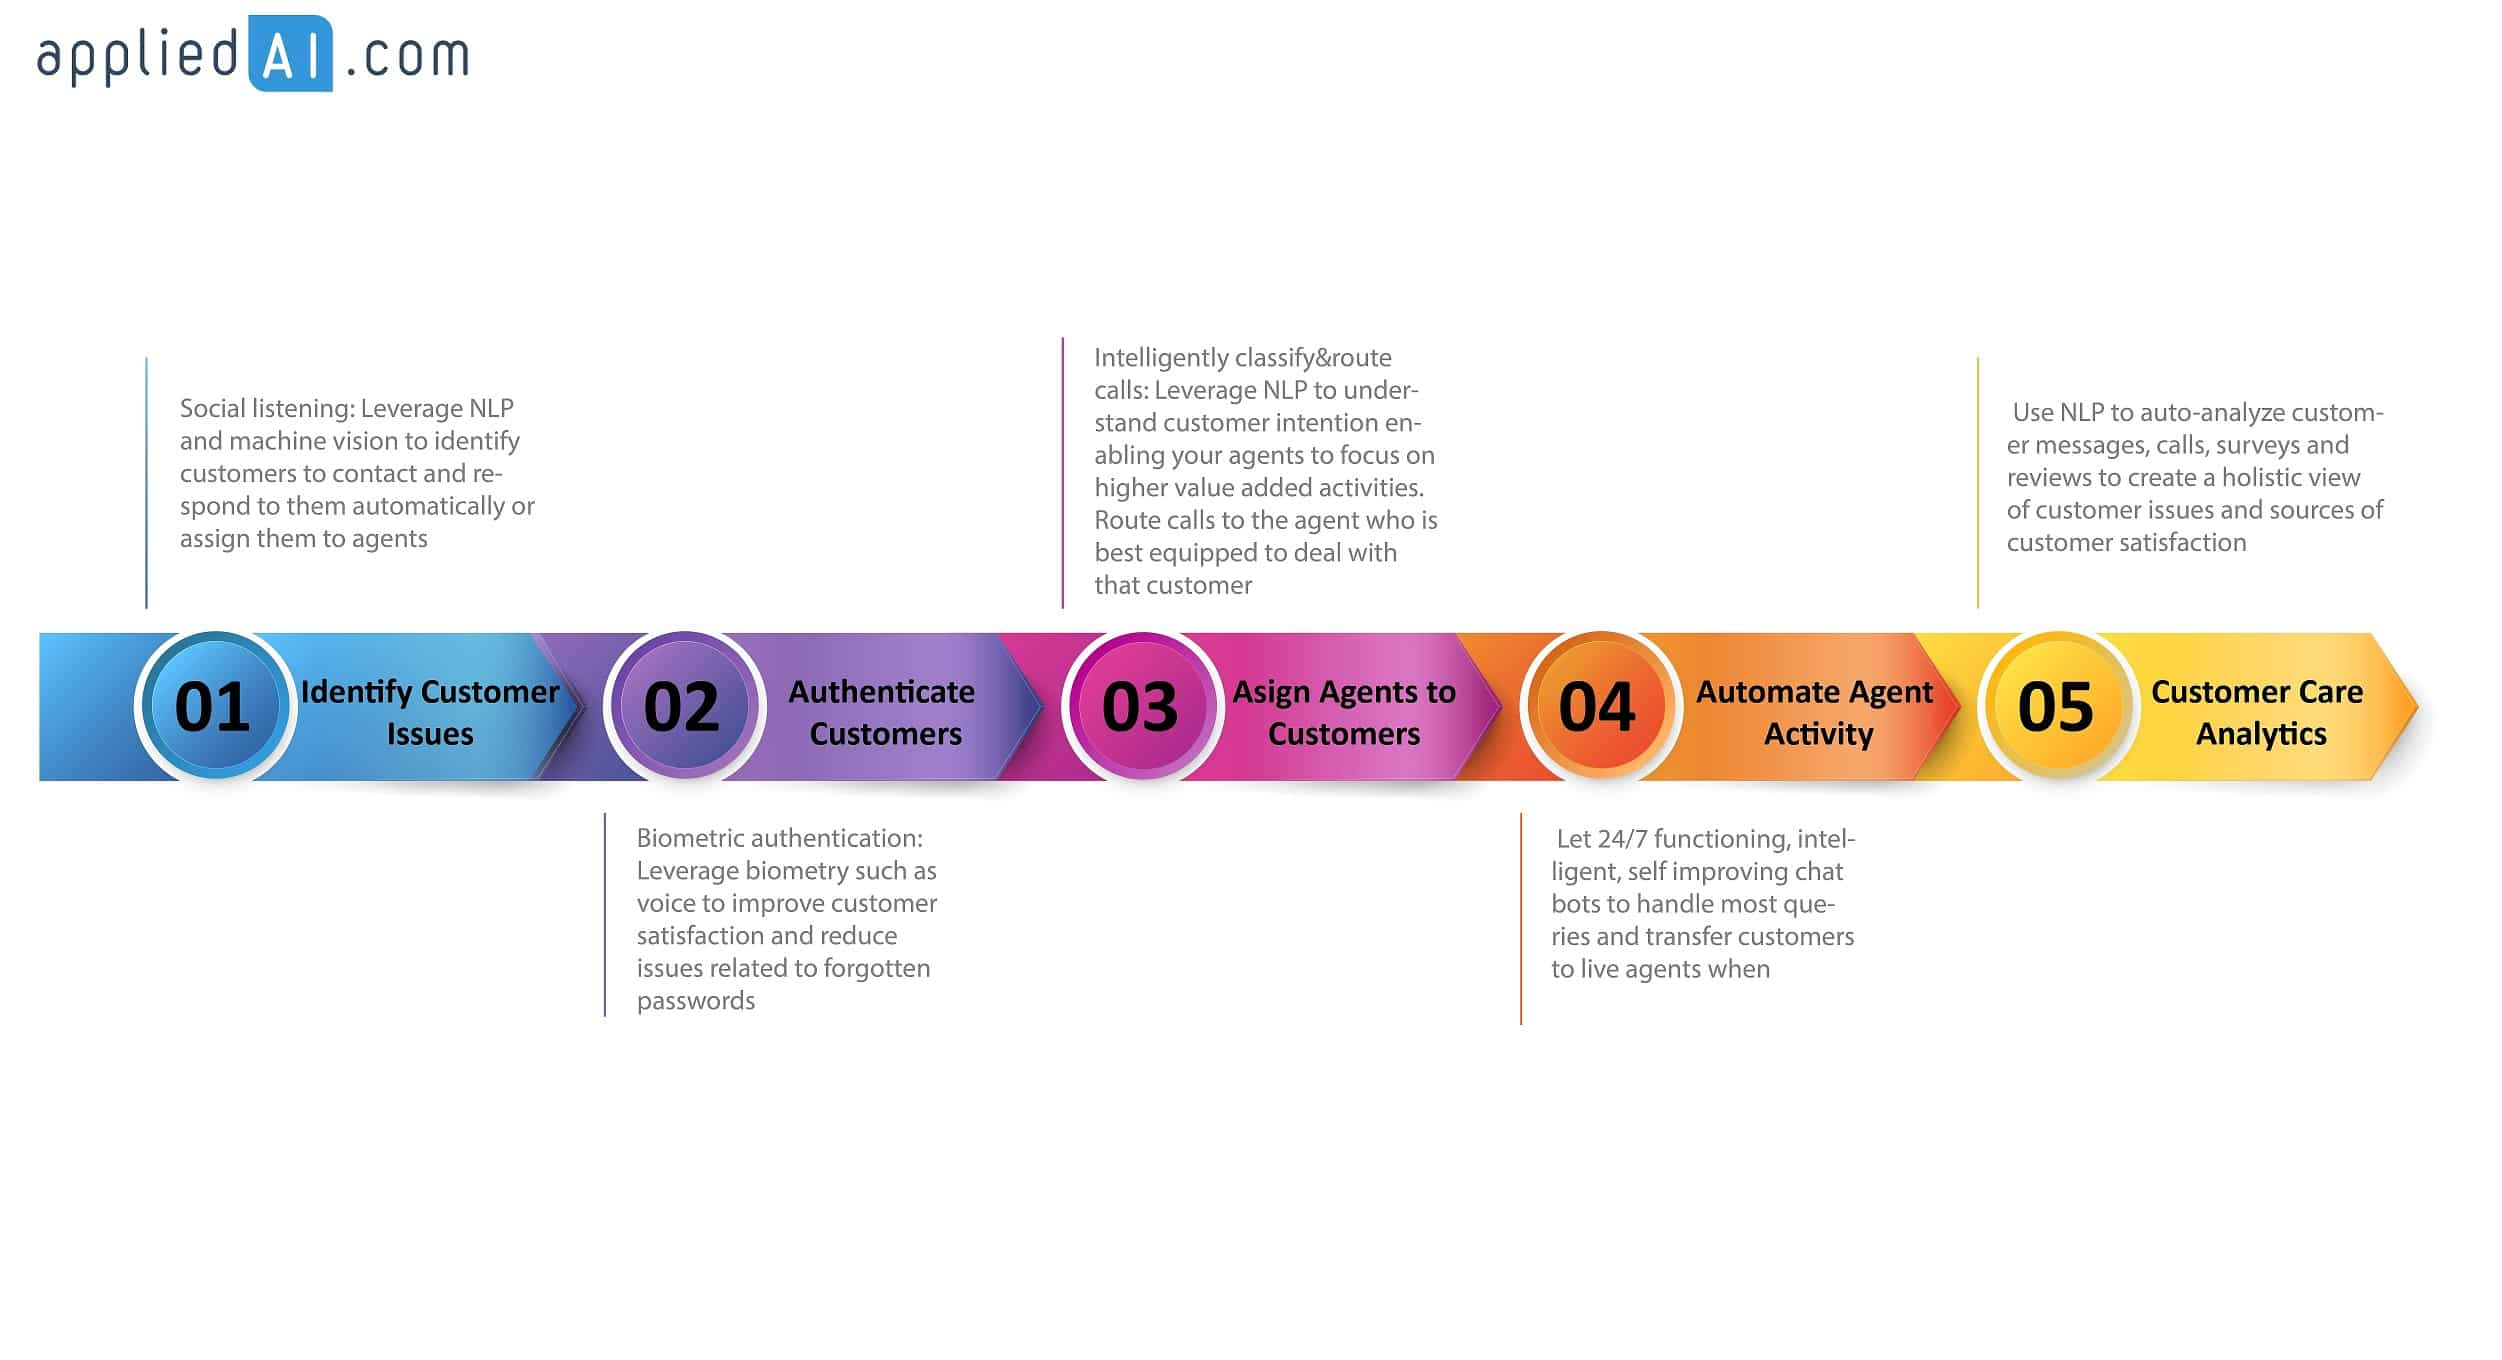 Top 5 primary customer service activities sorted according to their position in the customer lifecycle